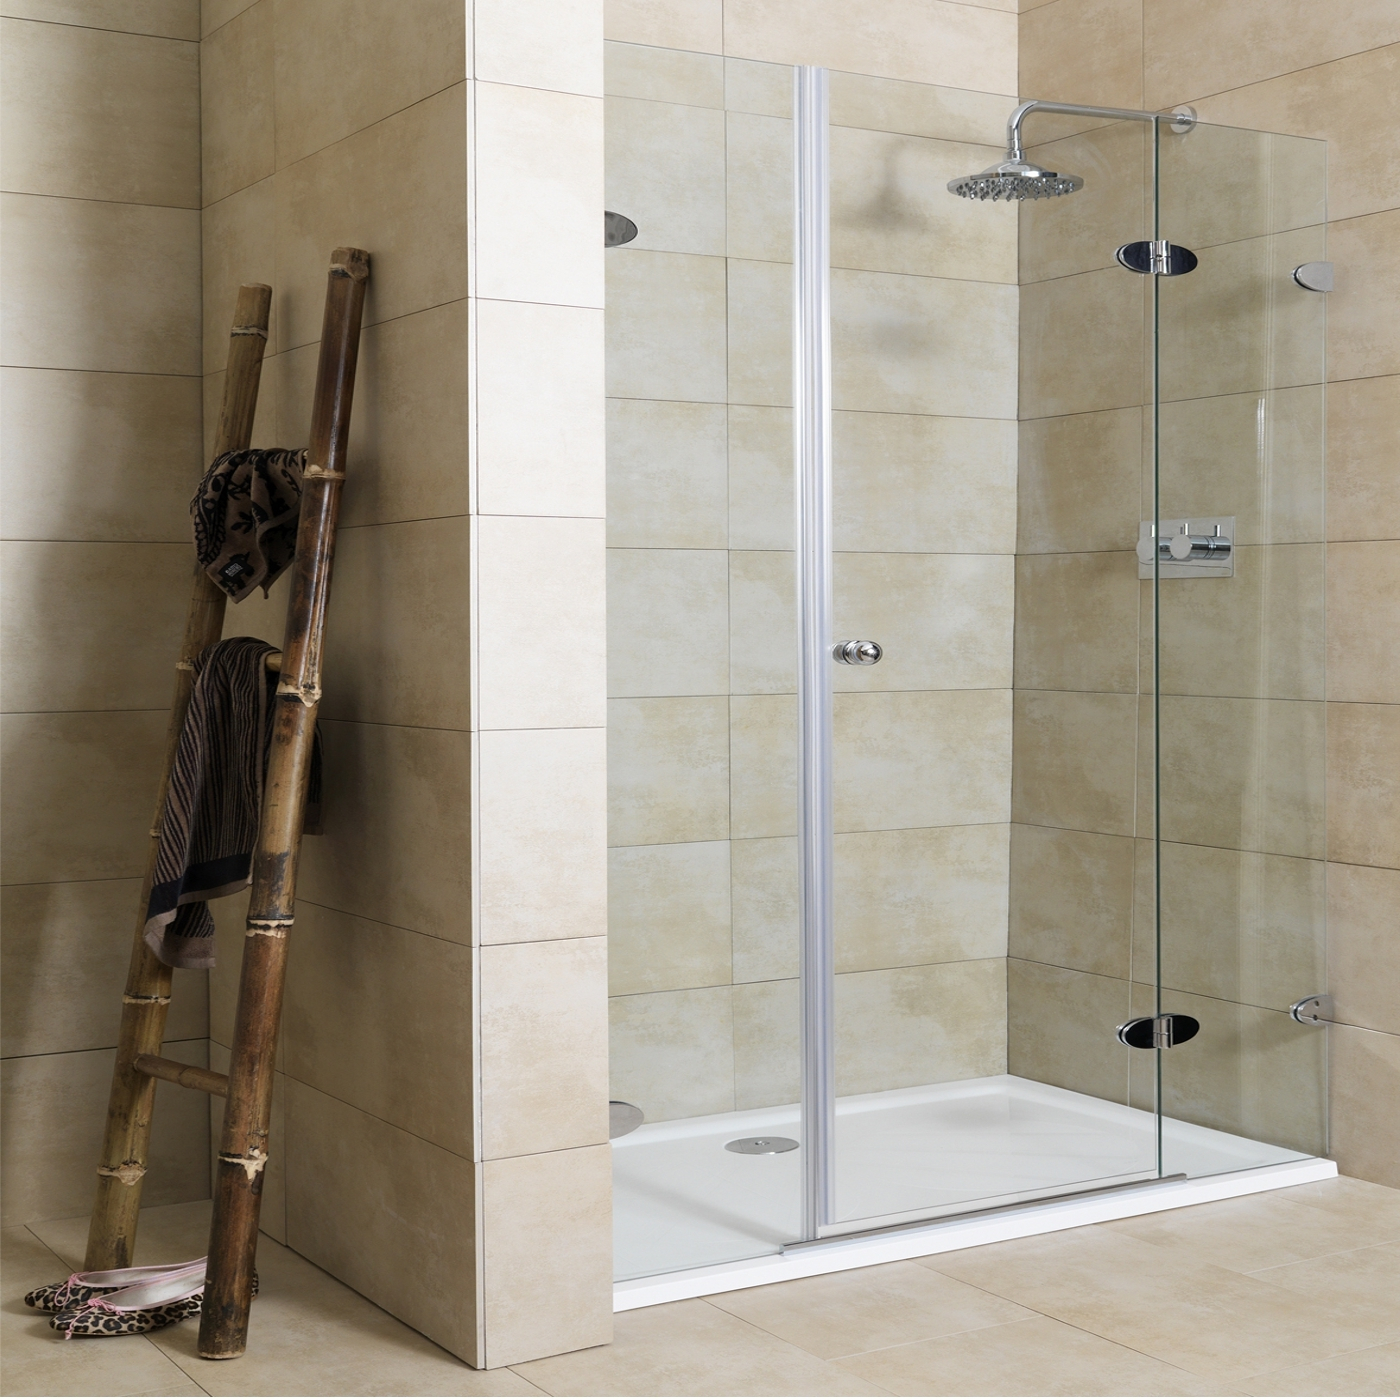 Elegant Bathtub Shower Doors Design Ideas Decors Ultra Modern with regard to dimensions 1400 X 1400